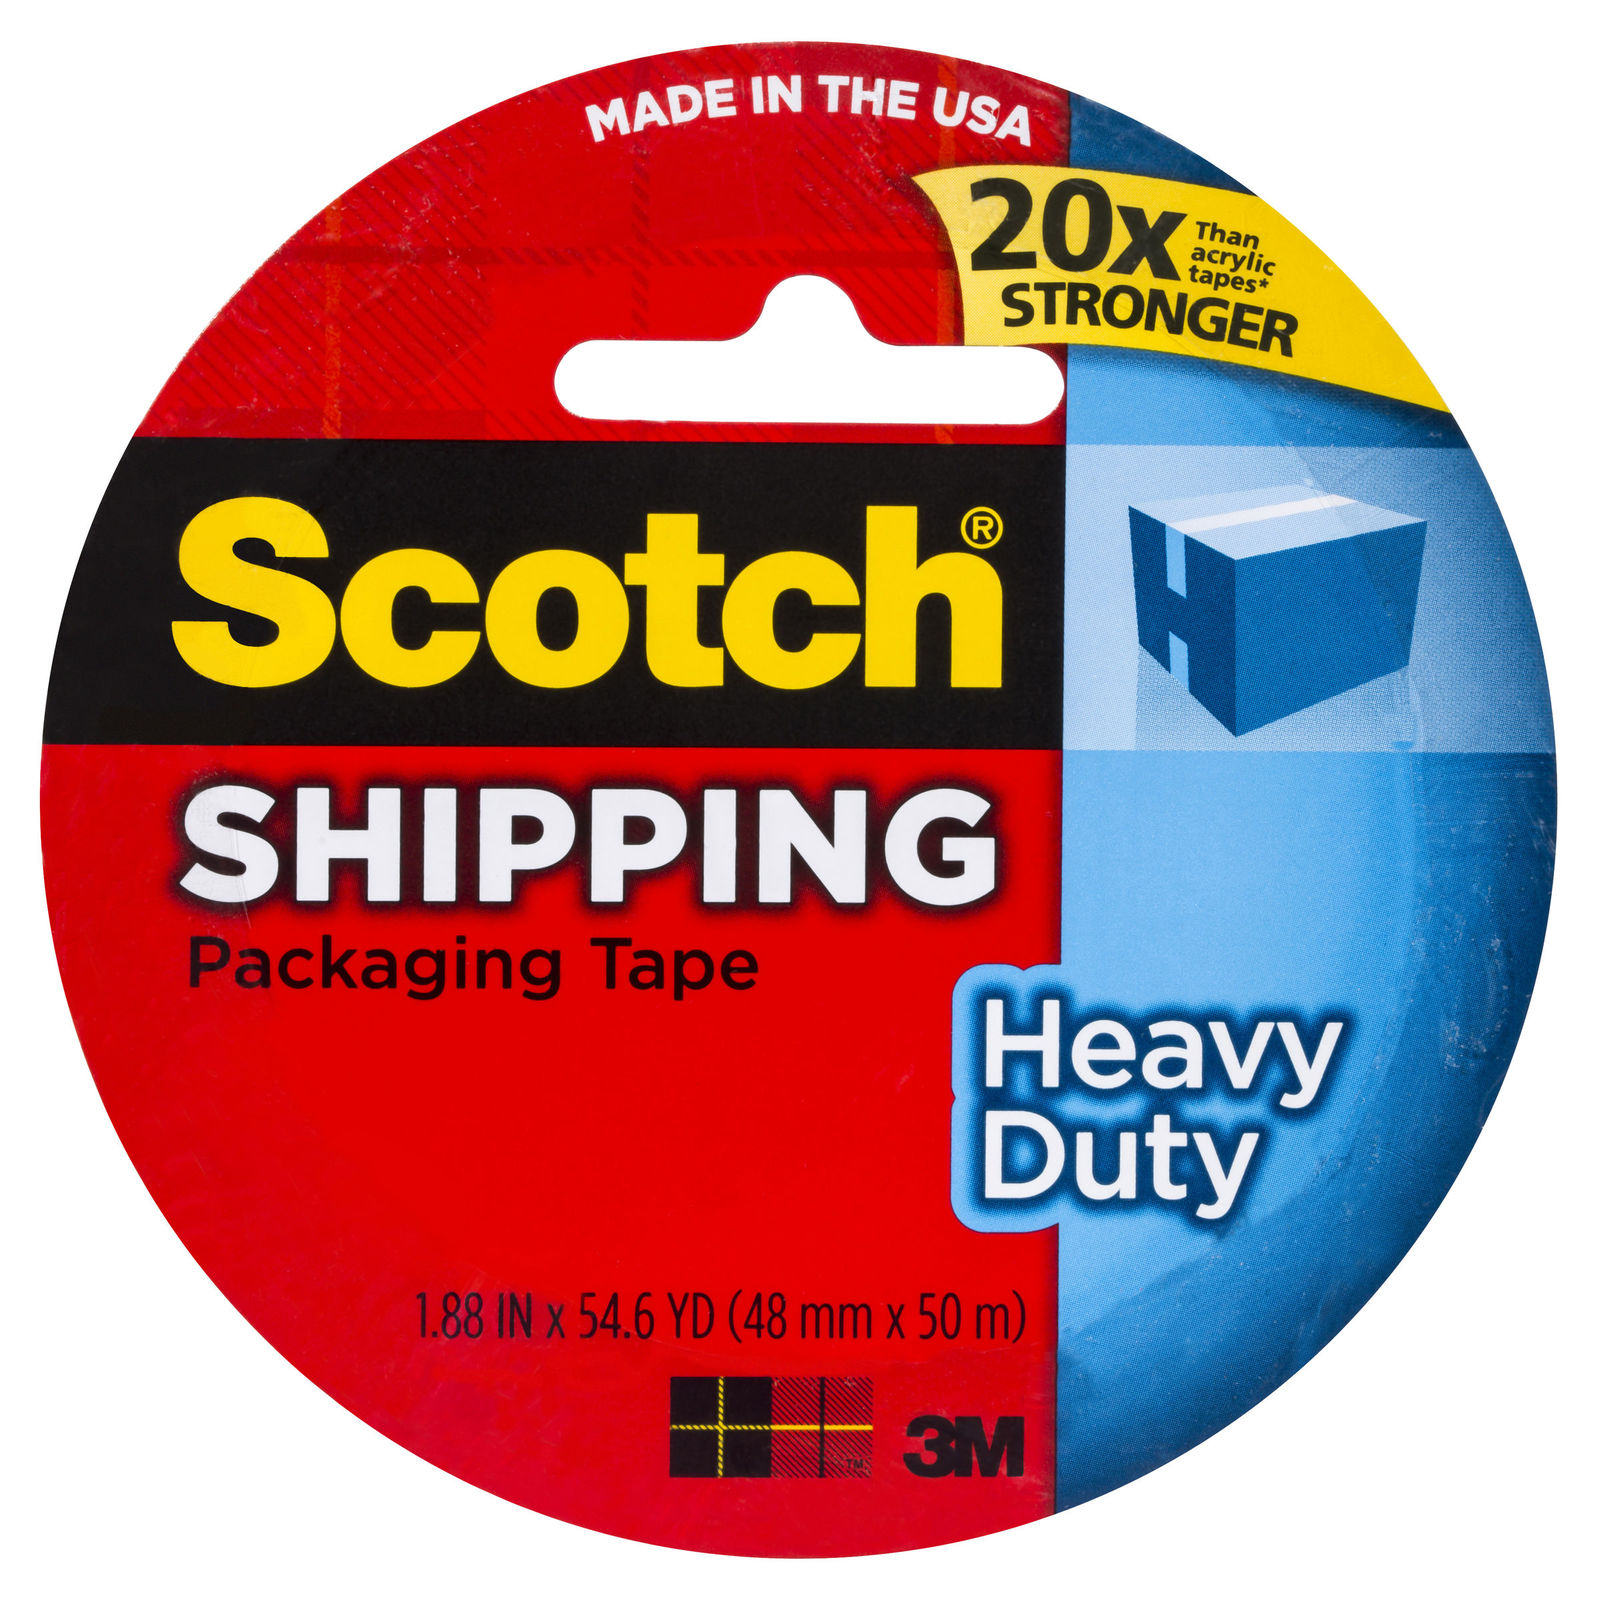 Scotch Heavy Duty Shipping Packaging Tape - Clear (48mm x 50m) image